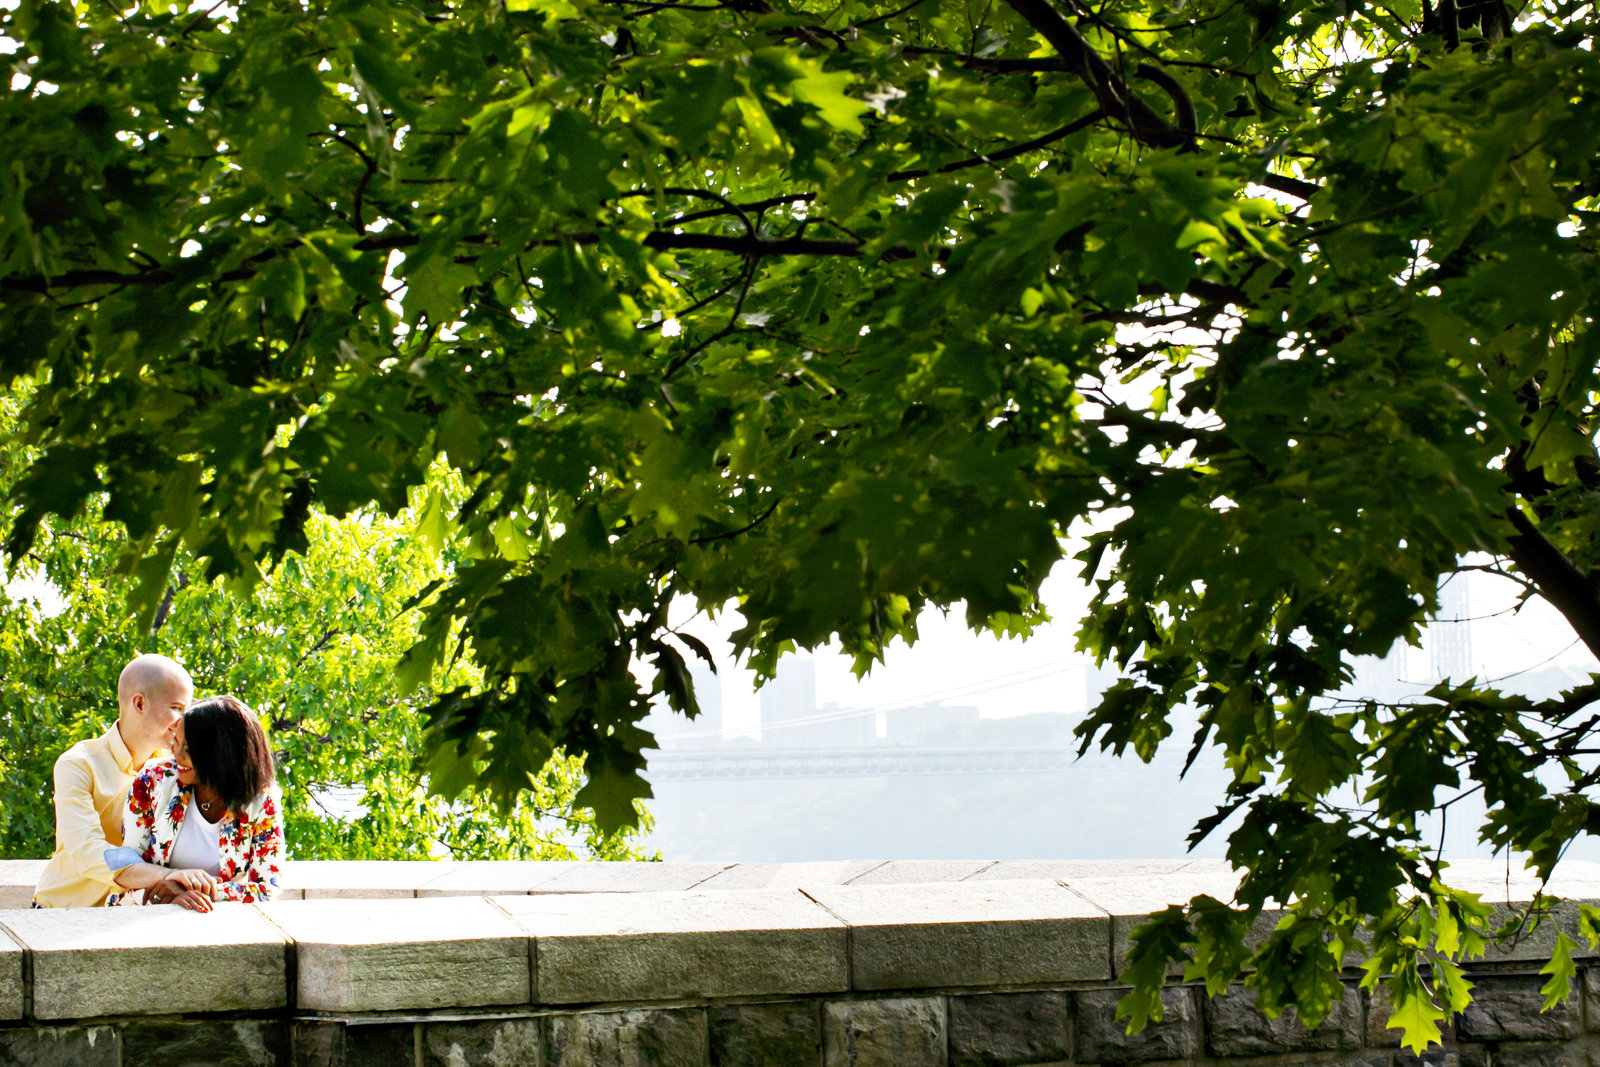 AmyAnaiz_Fort_Tyrone_Park_Cloisters_Engagement_New_York_017